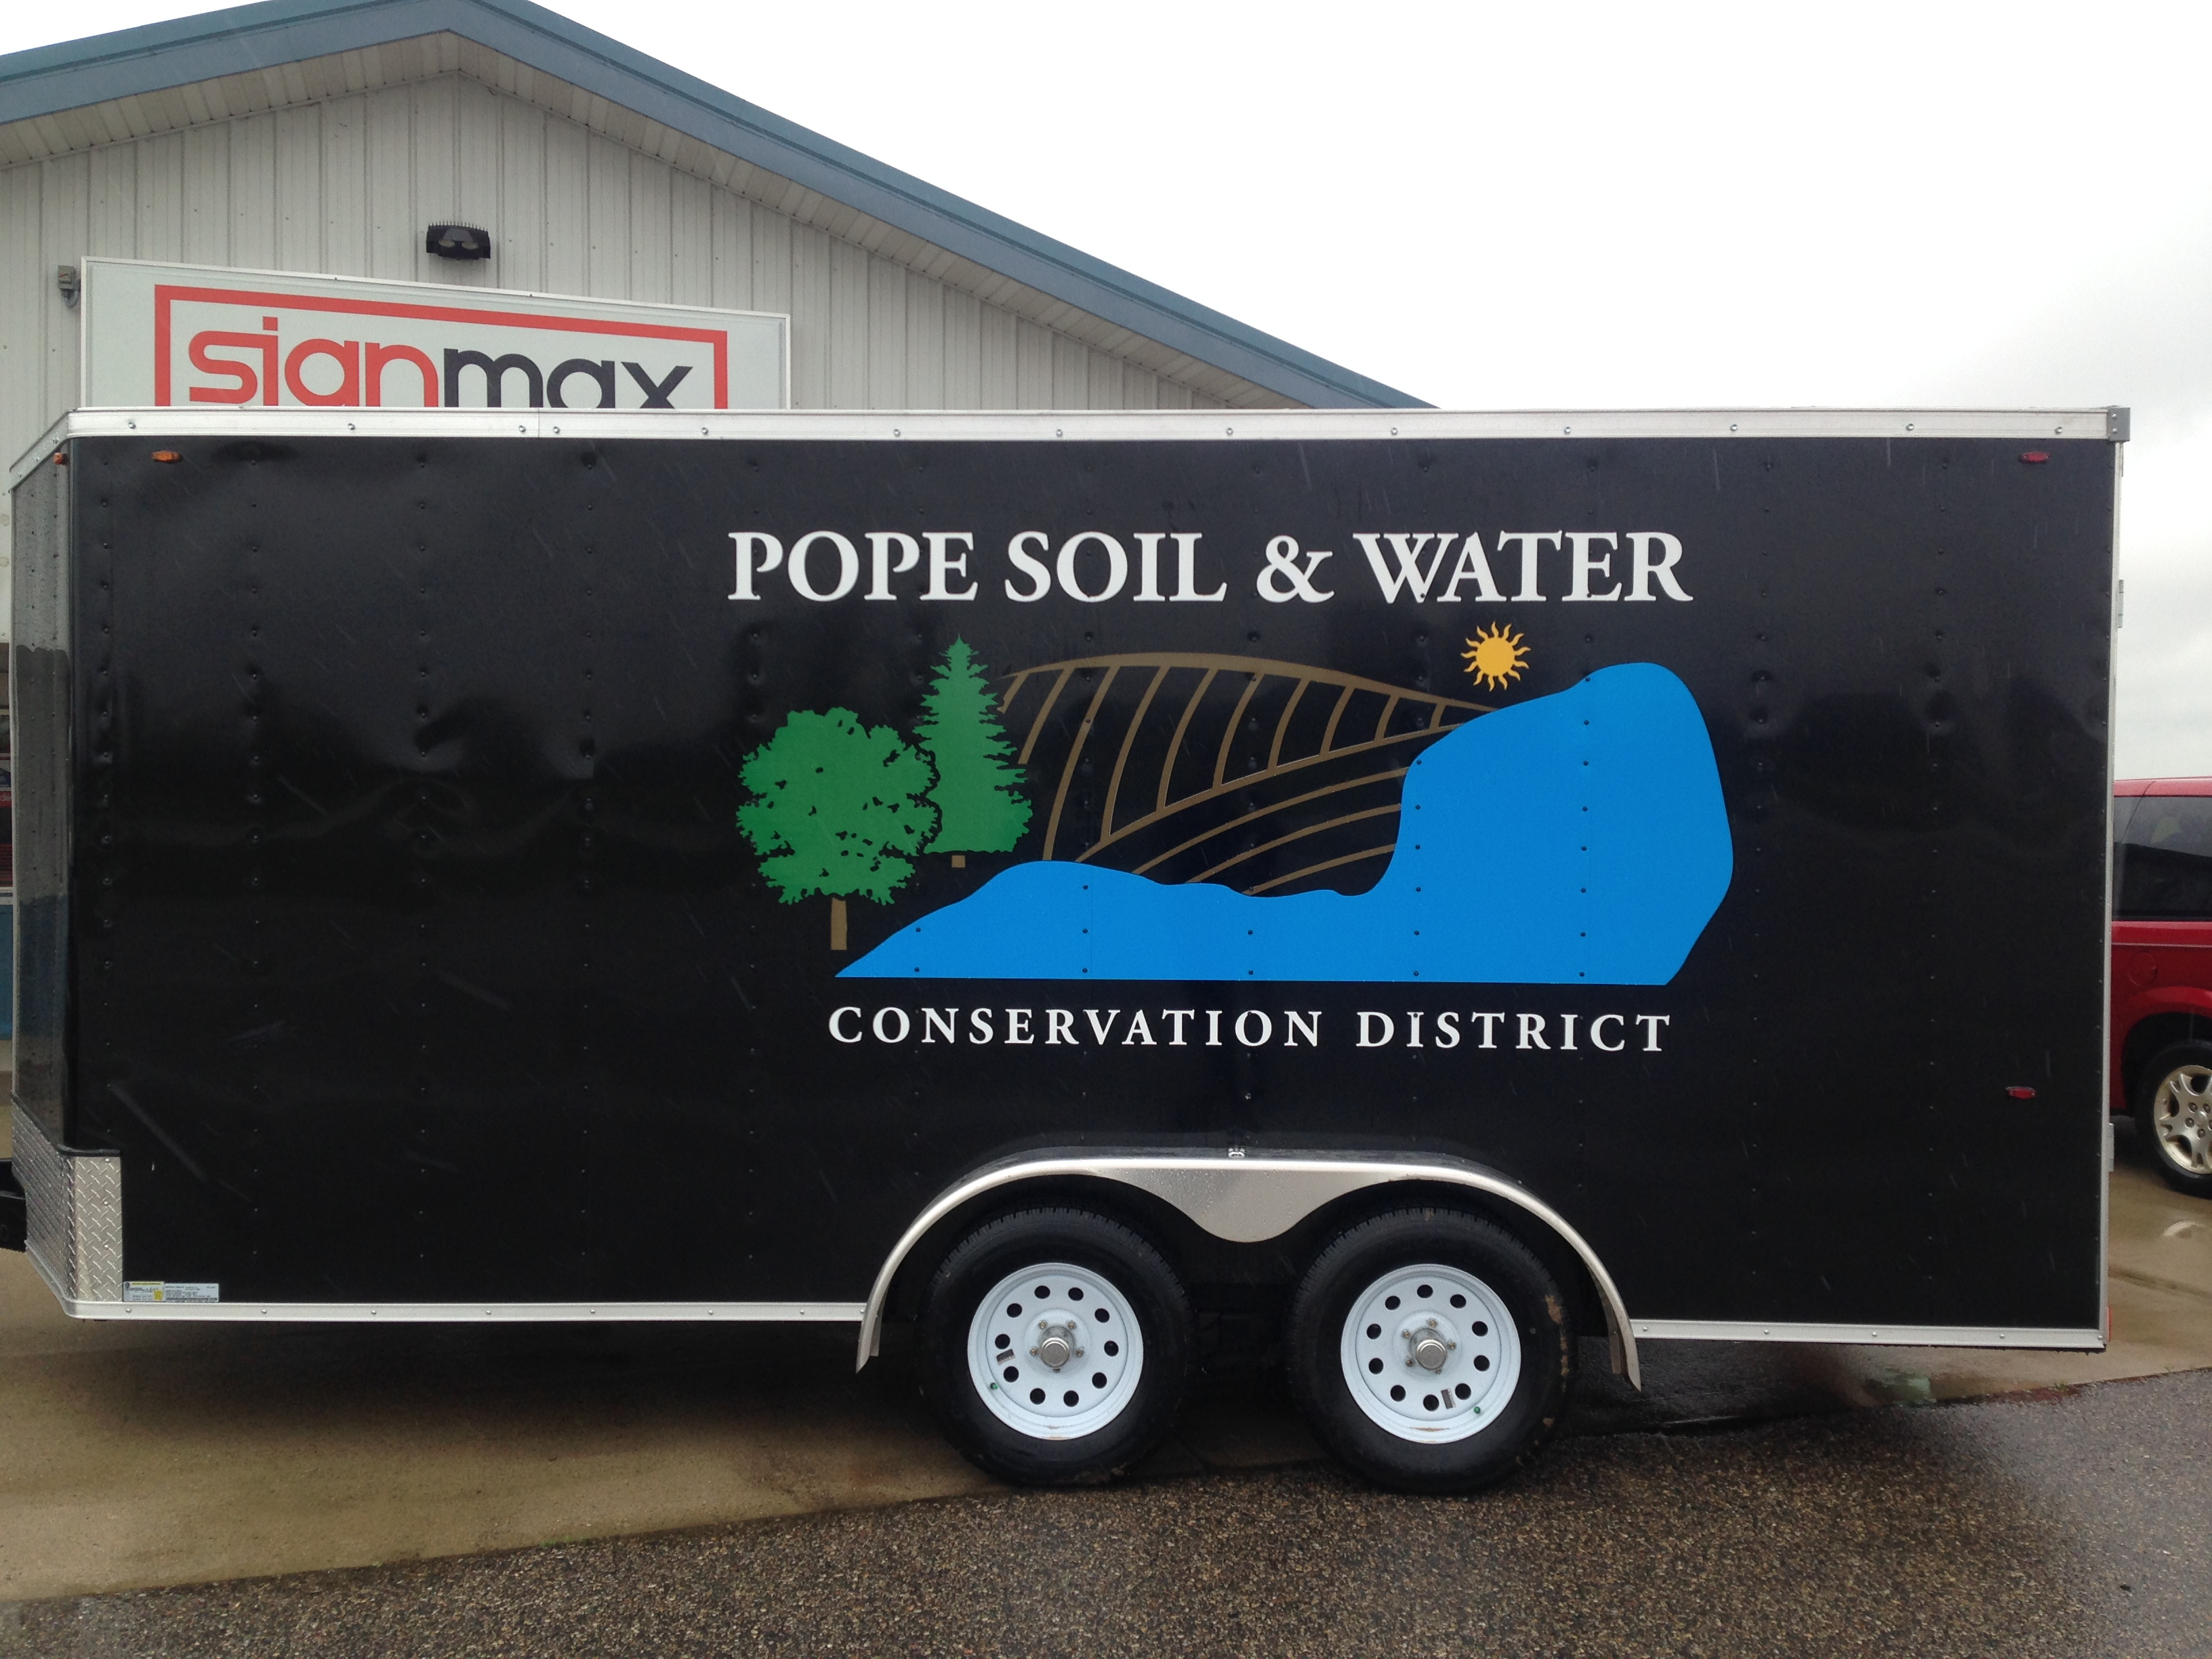 Custom Signage for Pope Soil & Water | Signmax.com